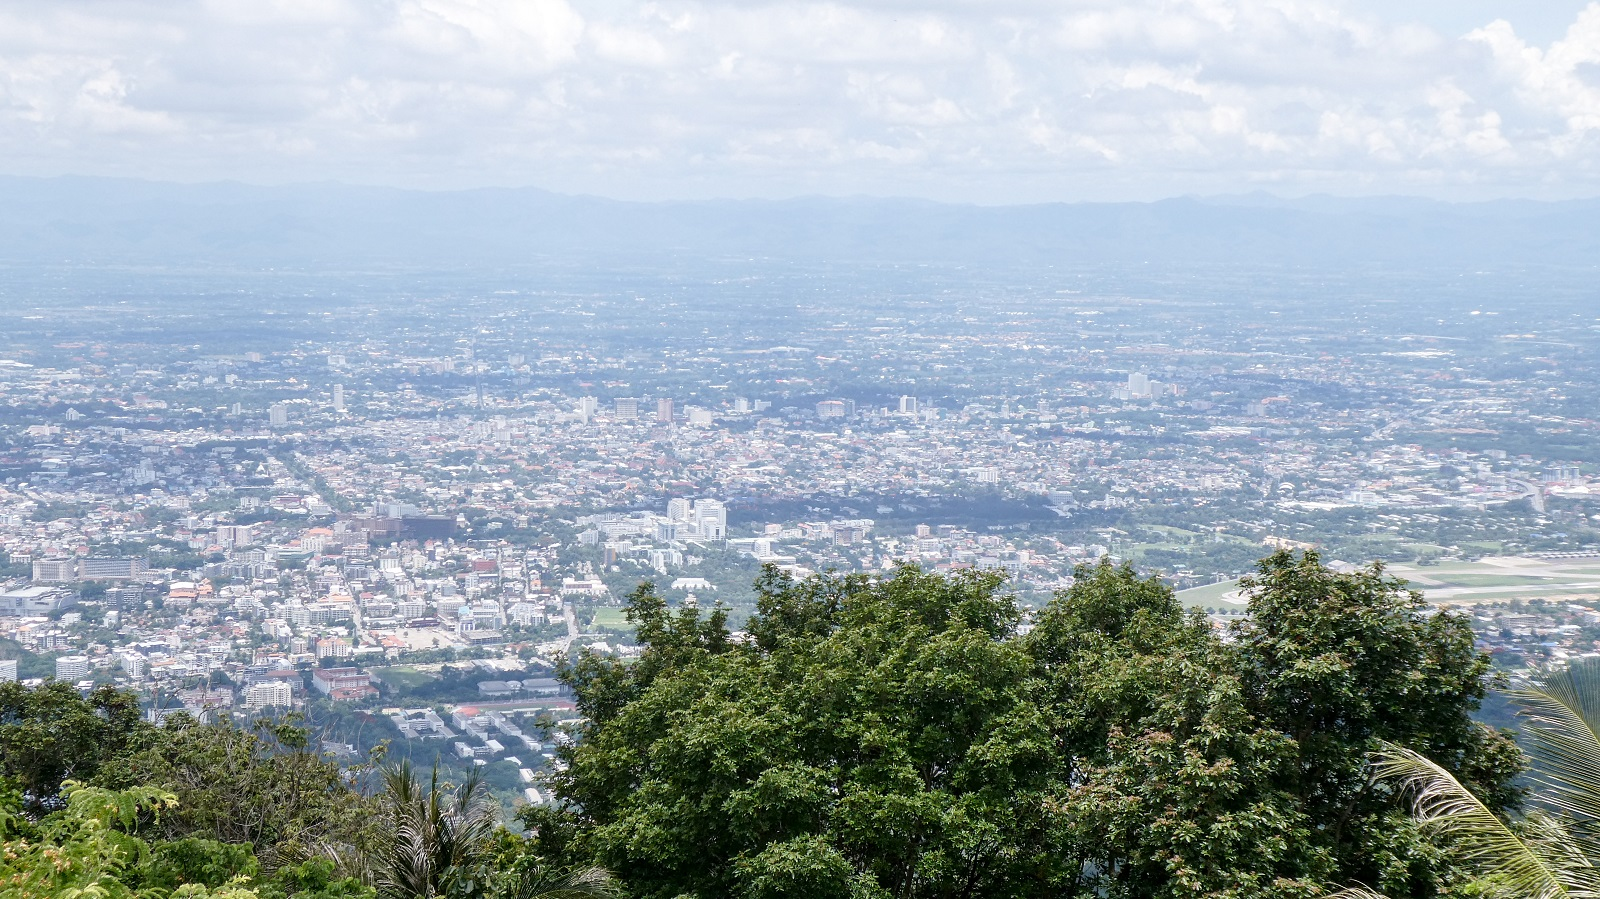 Aerial view of Chiang Mai from the road towards Doi Suthep